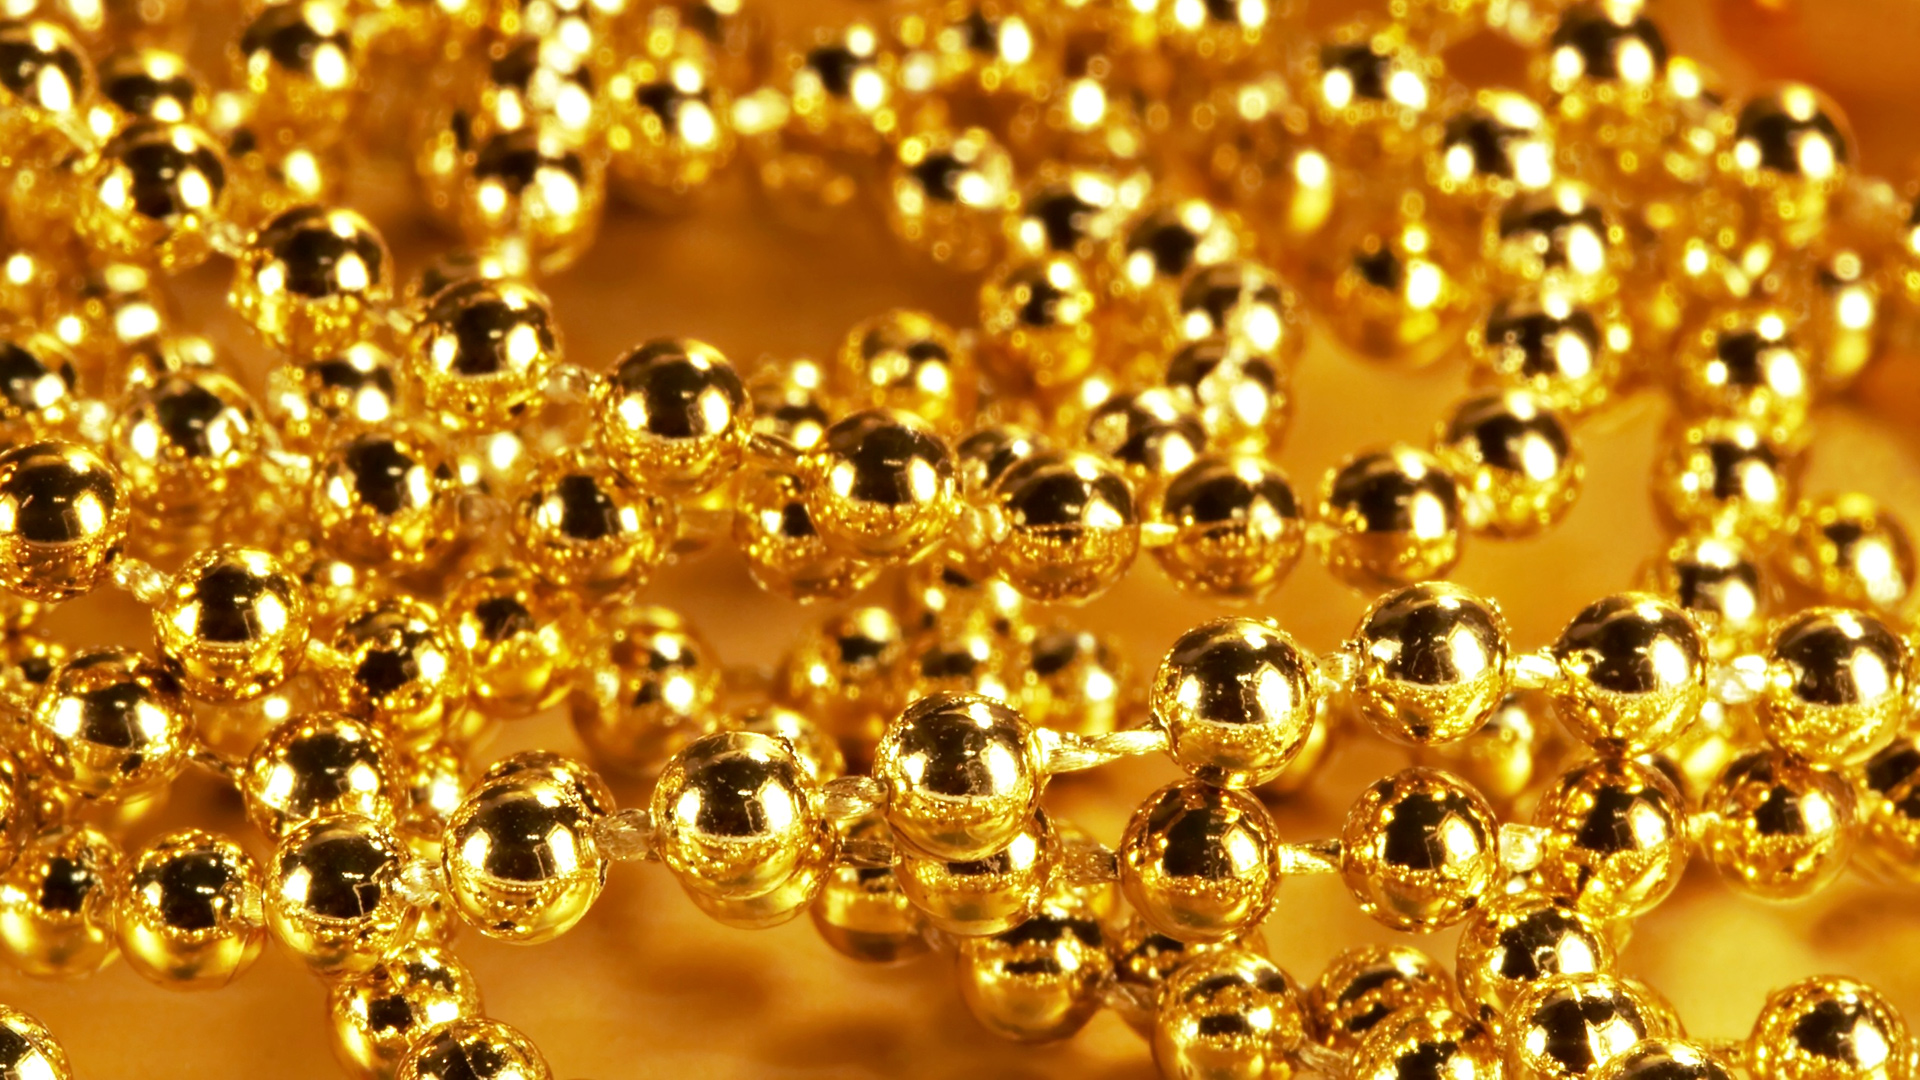 40 HD Gold Wallpaper Backgrounds For Desktop Download 1920x1080